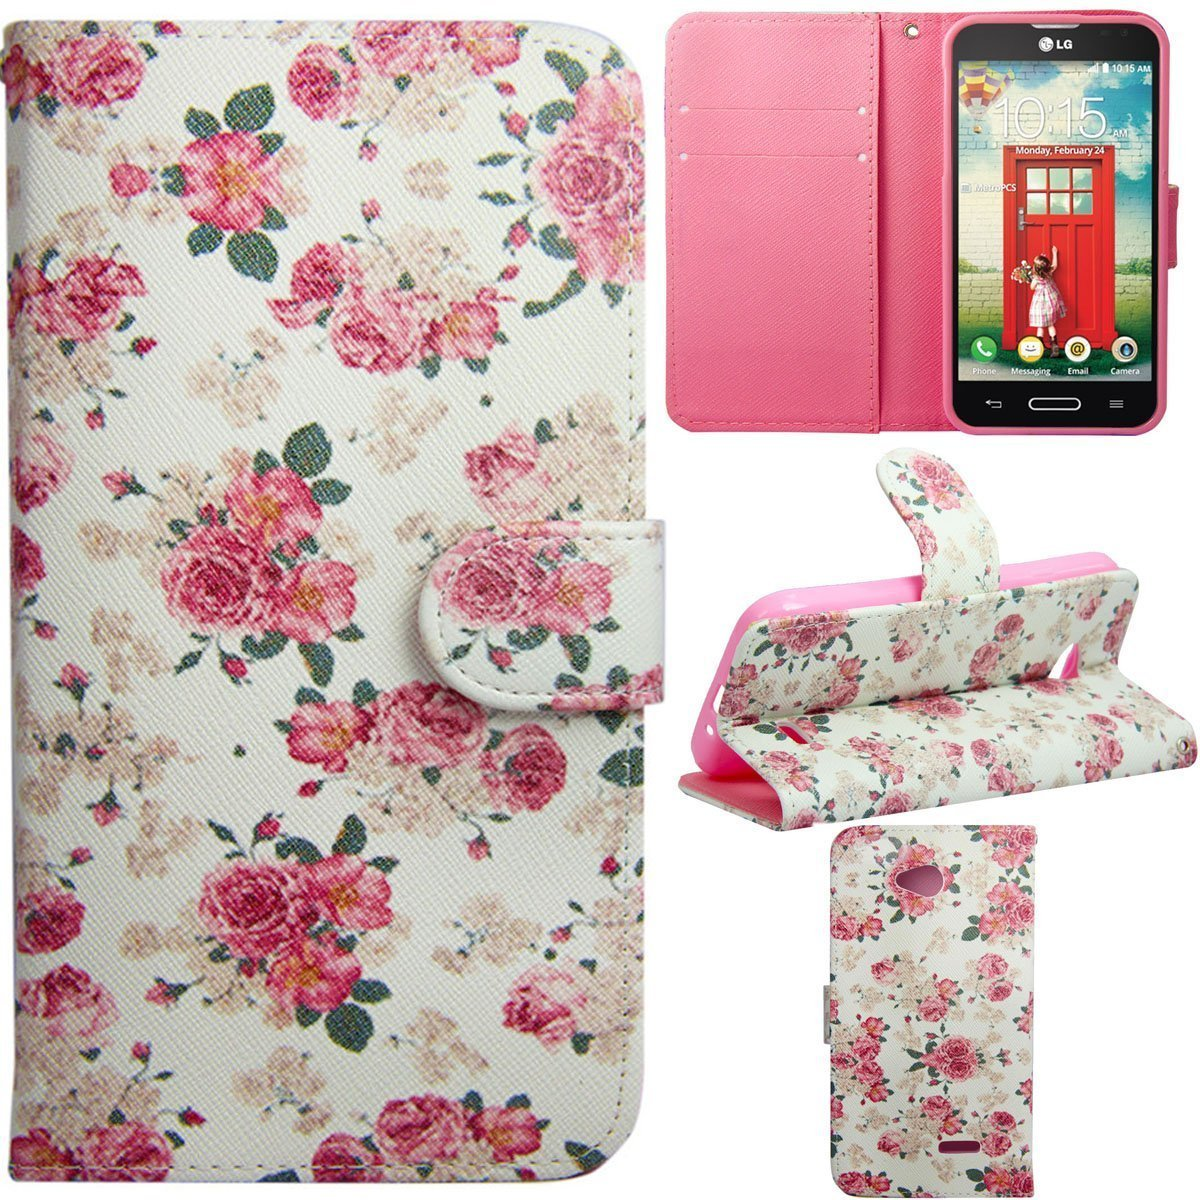 Buy Lg G Pro Lite D680 Case Kuteck Dual Layer Armor Protector D686 Black Kickstand Casetribe Tiger Pink Rose Design Premium Pu Leather Wallet Flip Folio Cover For